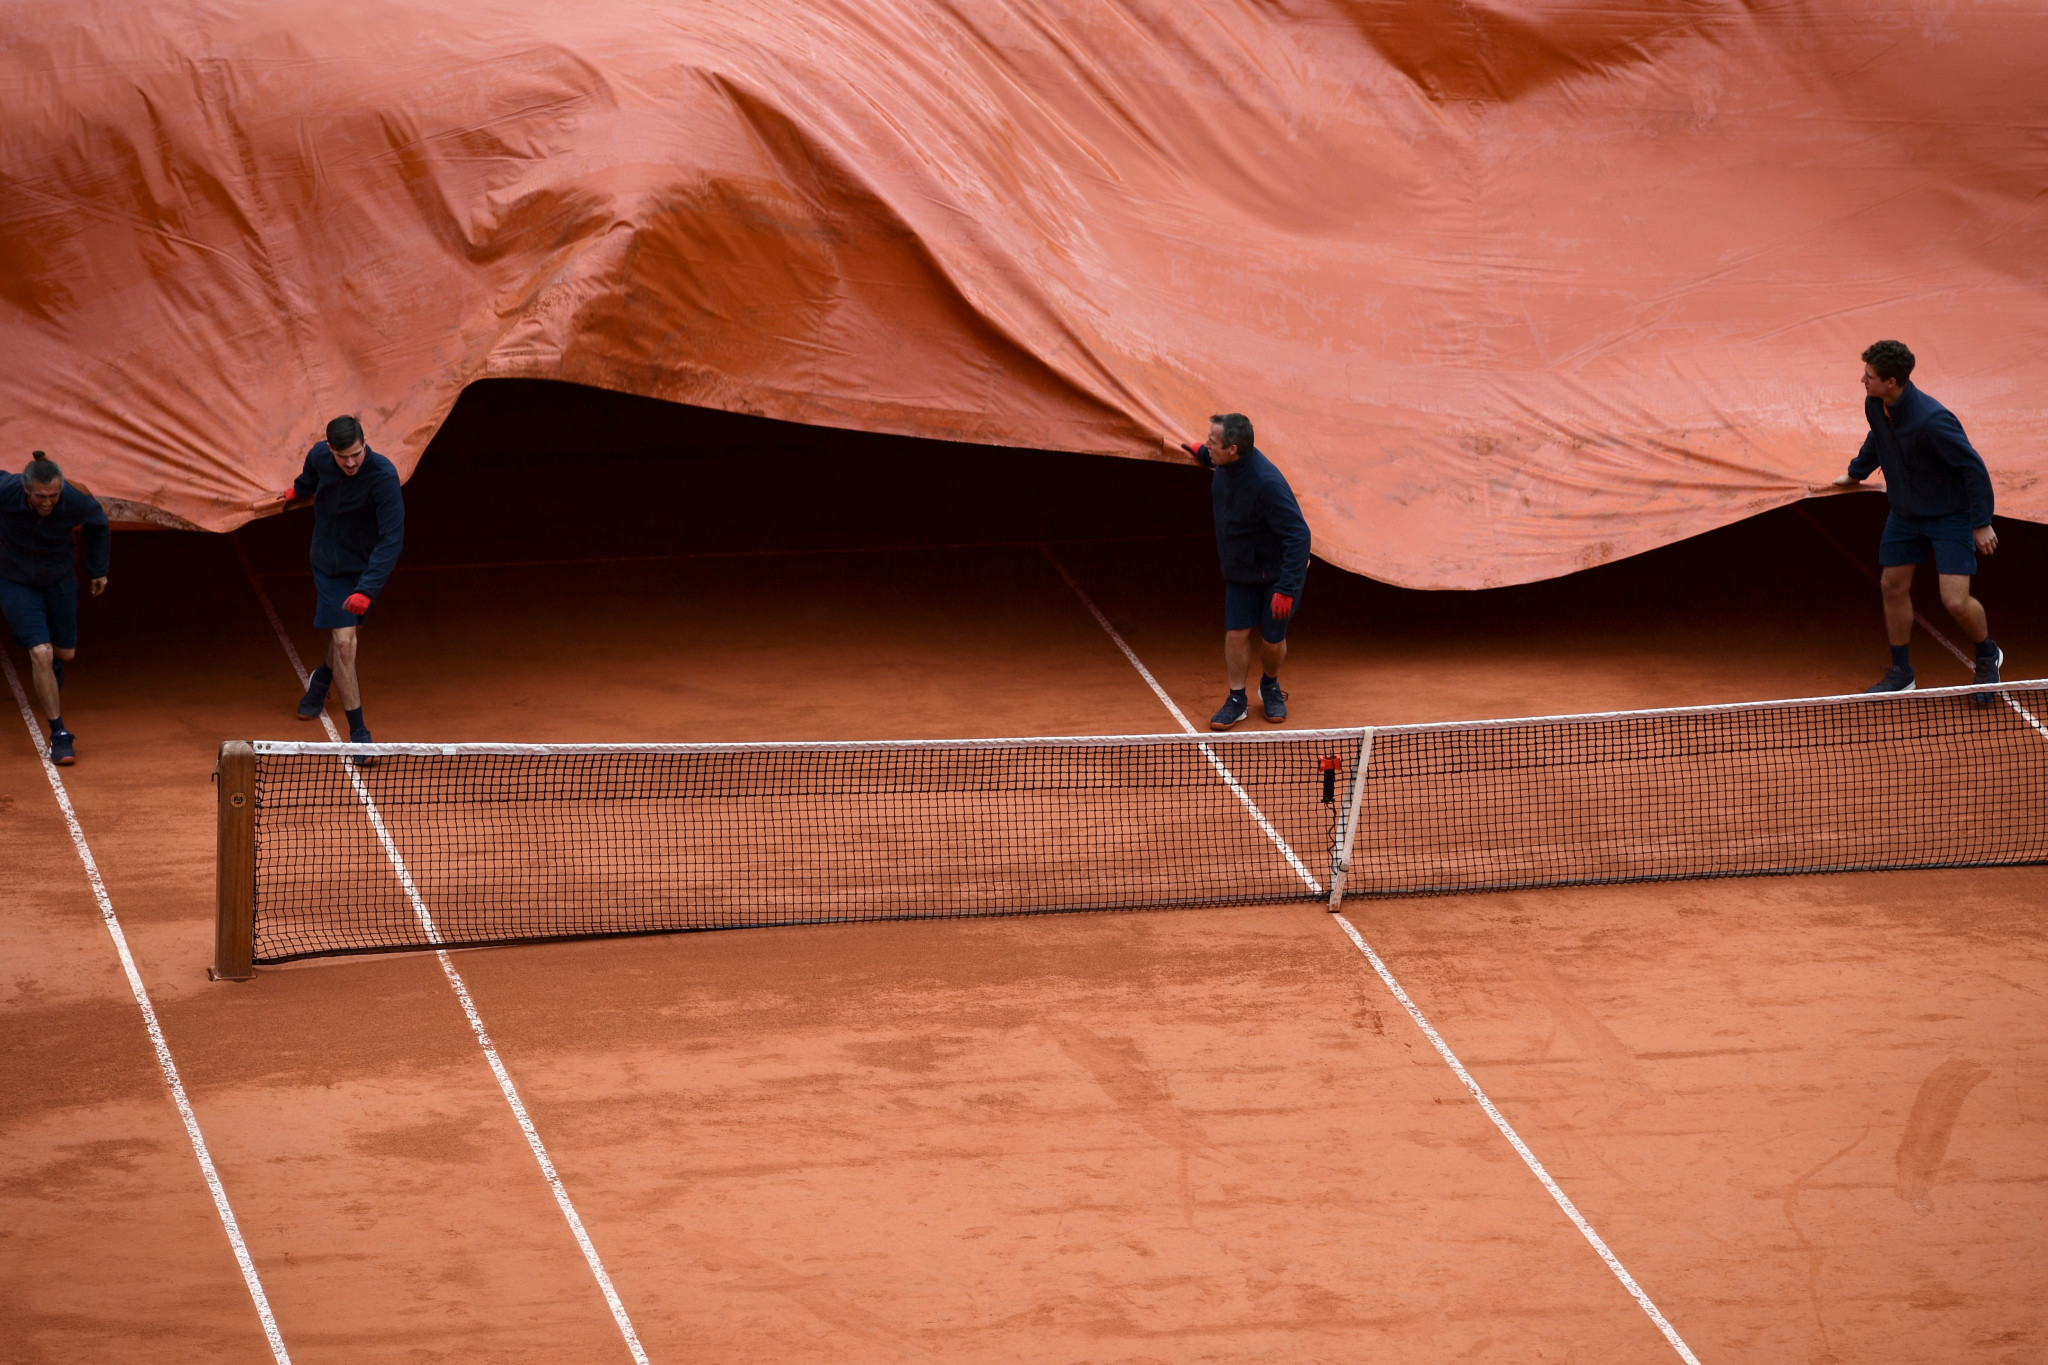 The Roland Garros covers were pulled out again on Friday as rain halted Serbian Novak Djokovic and Austrian Dominic Thiem's semi-final ©Getty Images